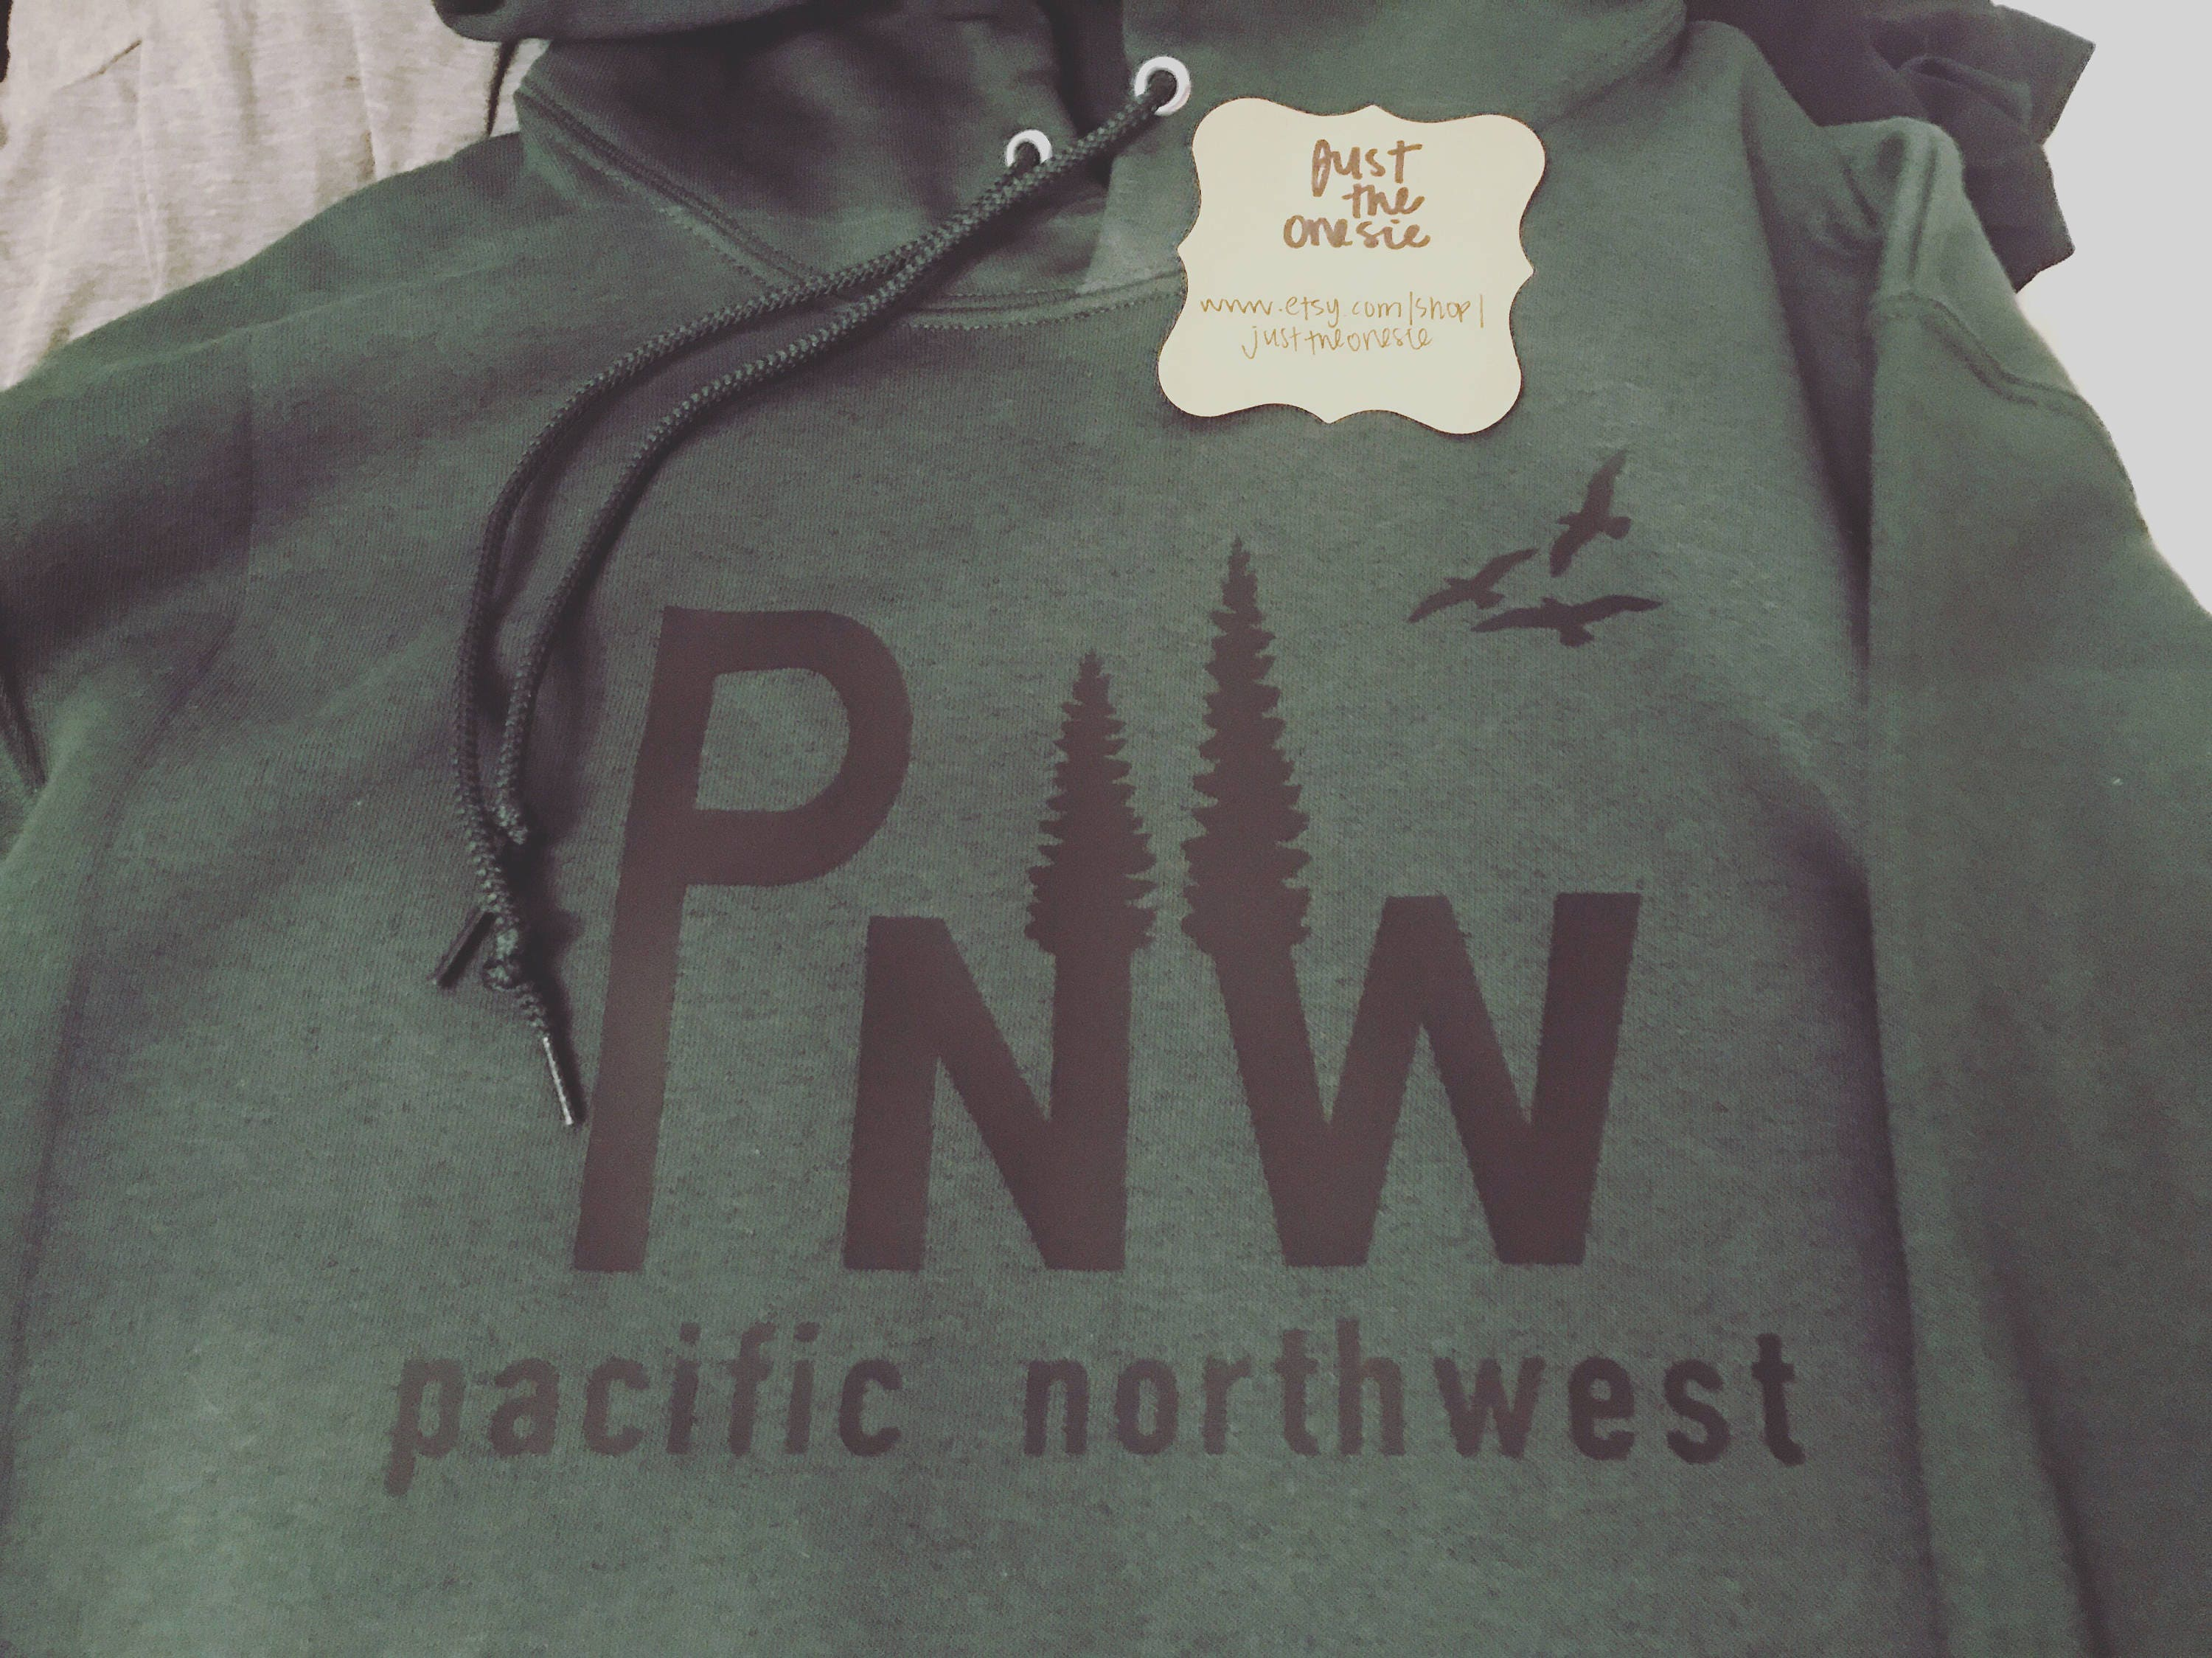 PNW Sweatshirt - Evergreen Tree - Pacific Northwest - PNW Shirt - Oregon Shirt - Washington Shirt - Women's Clothes - Men's Clothes xPjIg7W5j